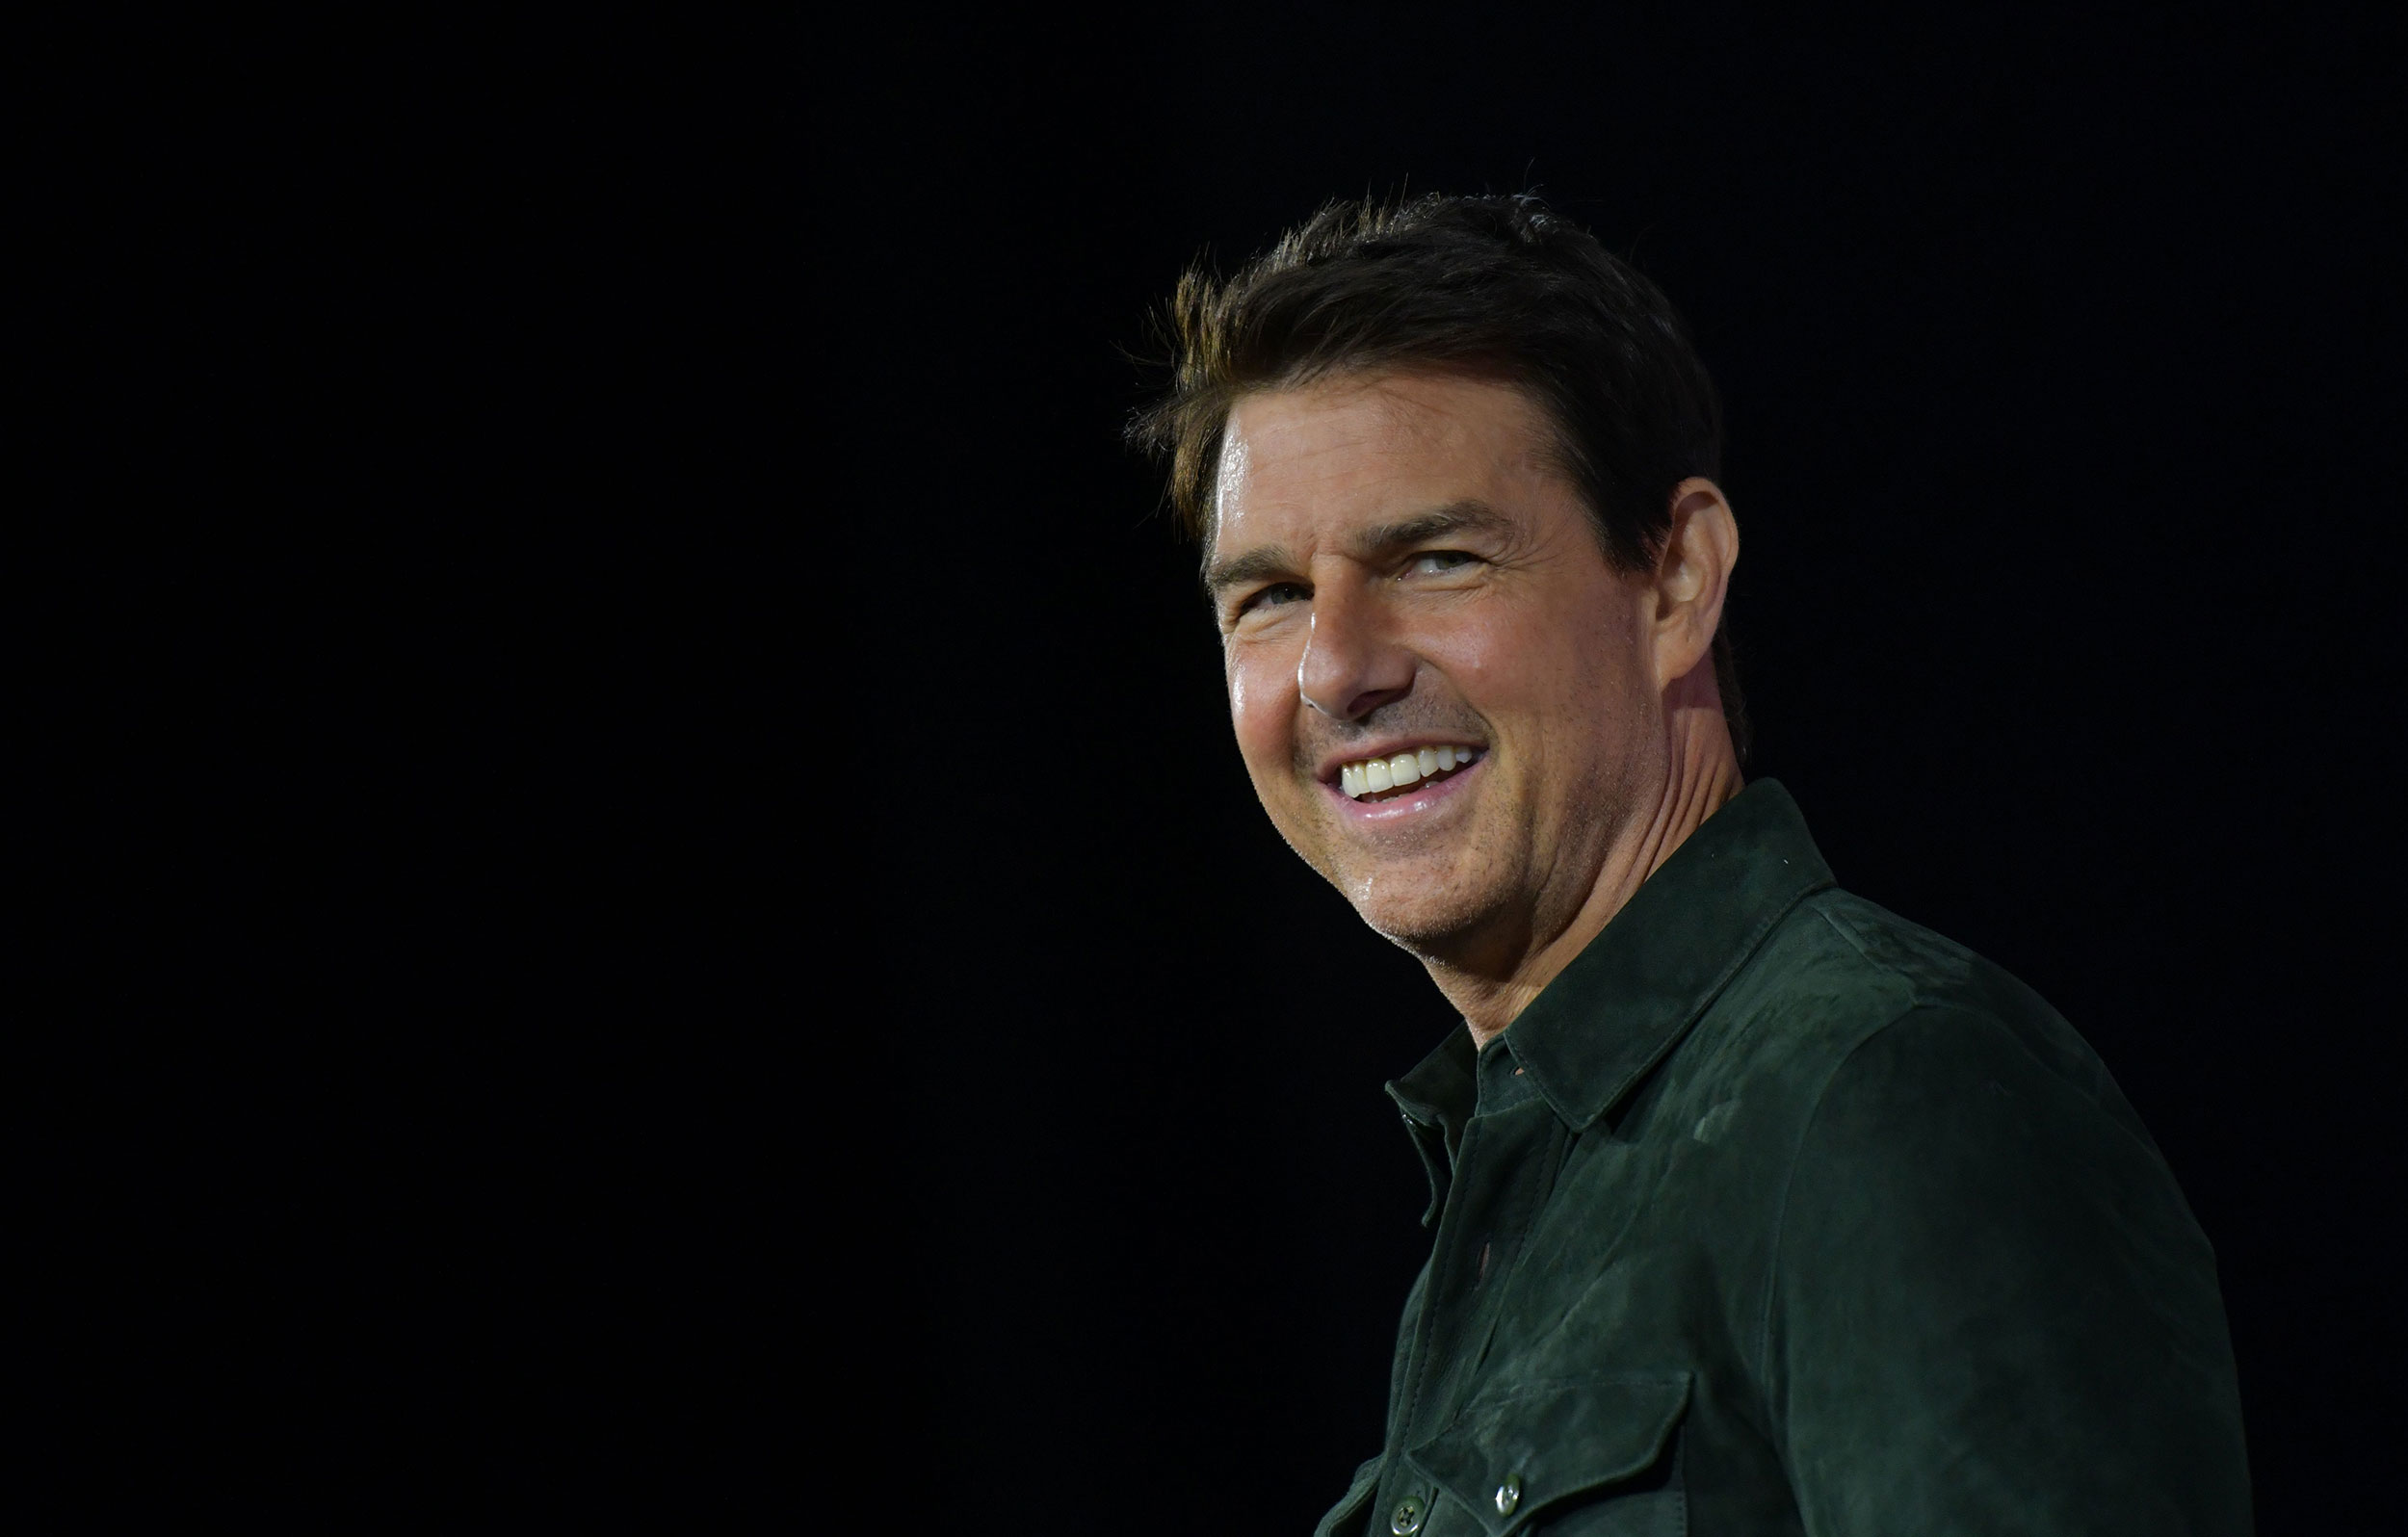 Tom Cruise, star of many movies, goes back to the movies